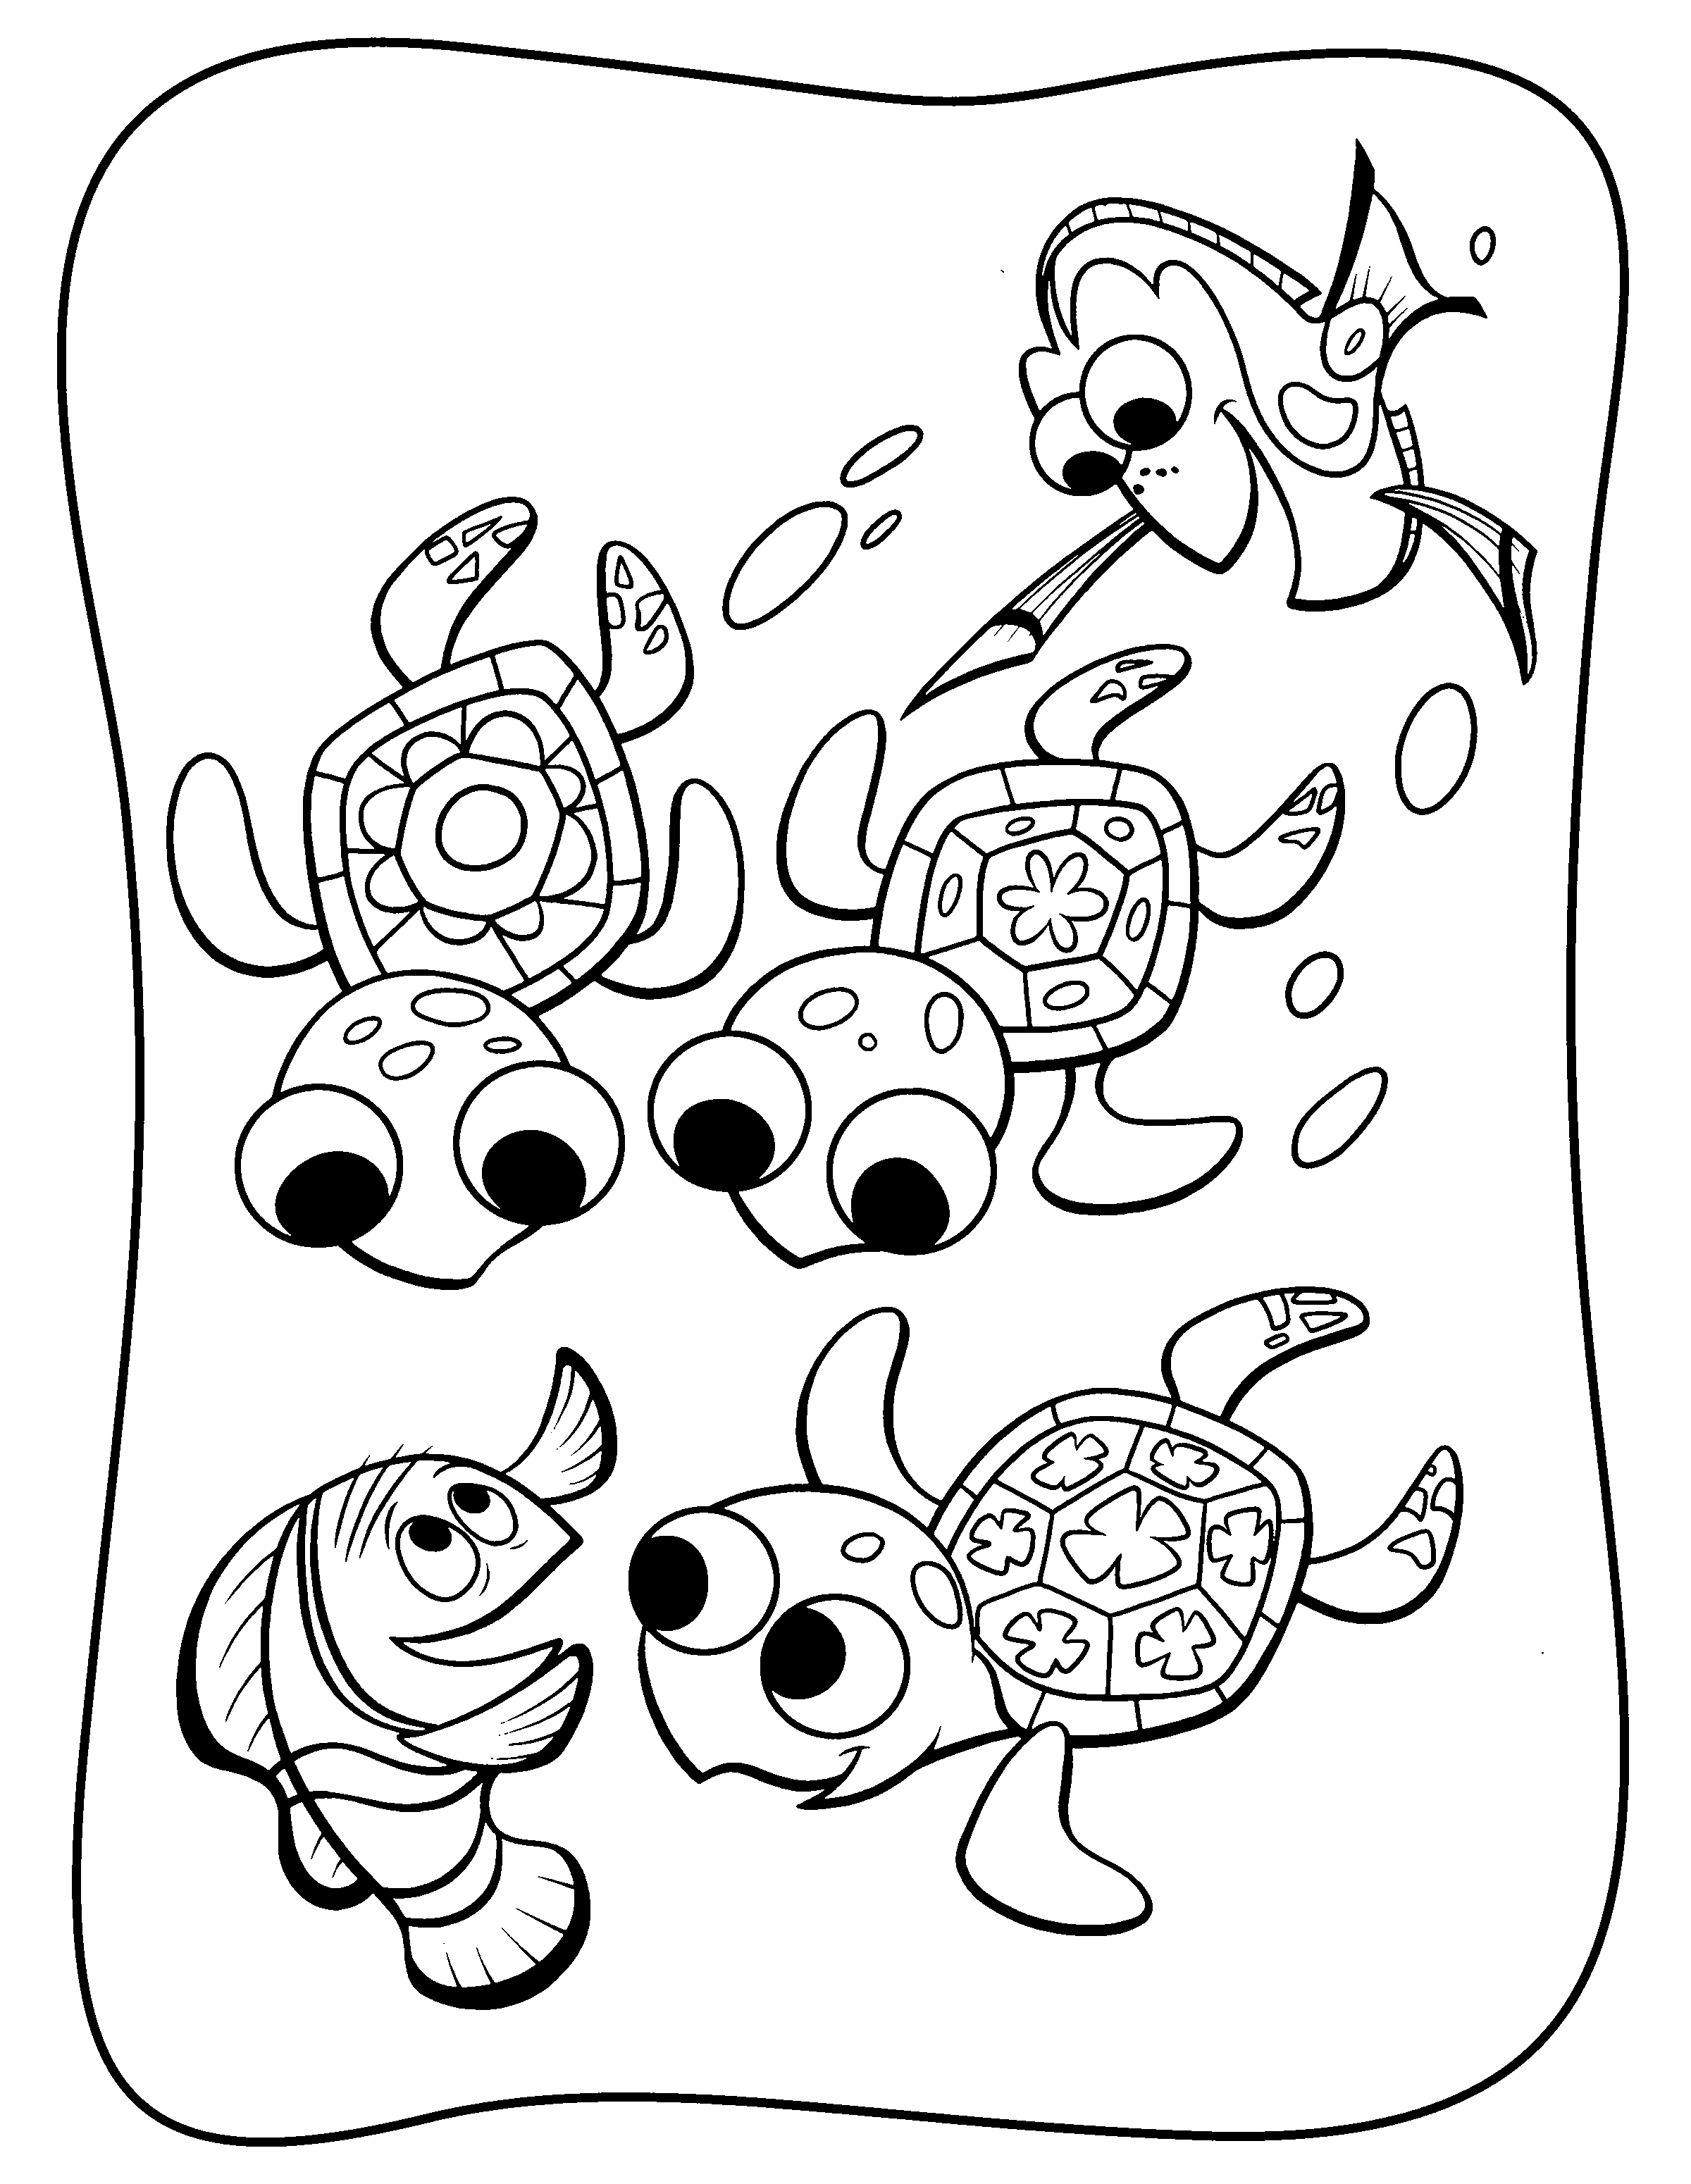 coloring nemo dory dory coloring pages best coloring pages for kids nemo coloring dory